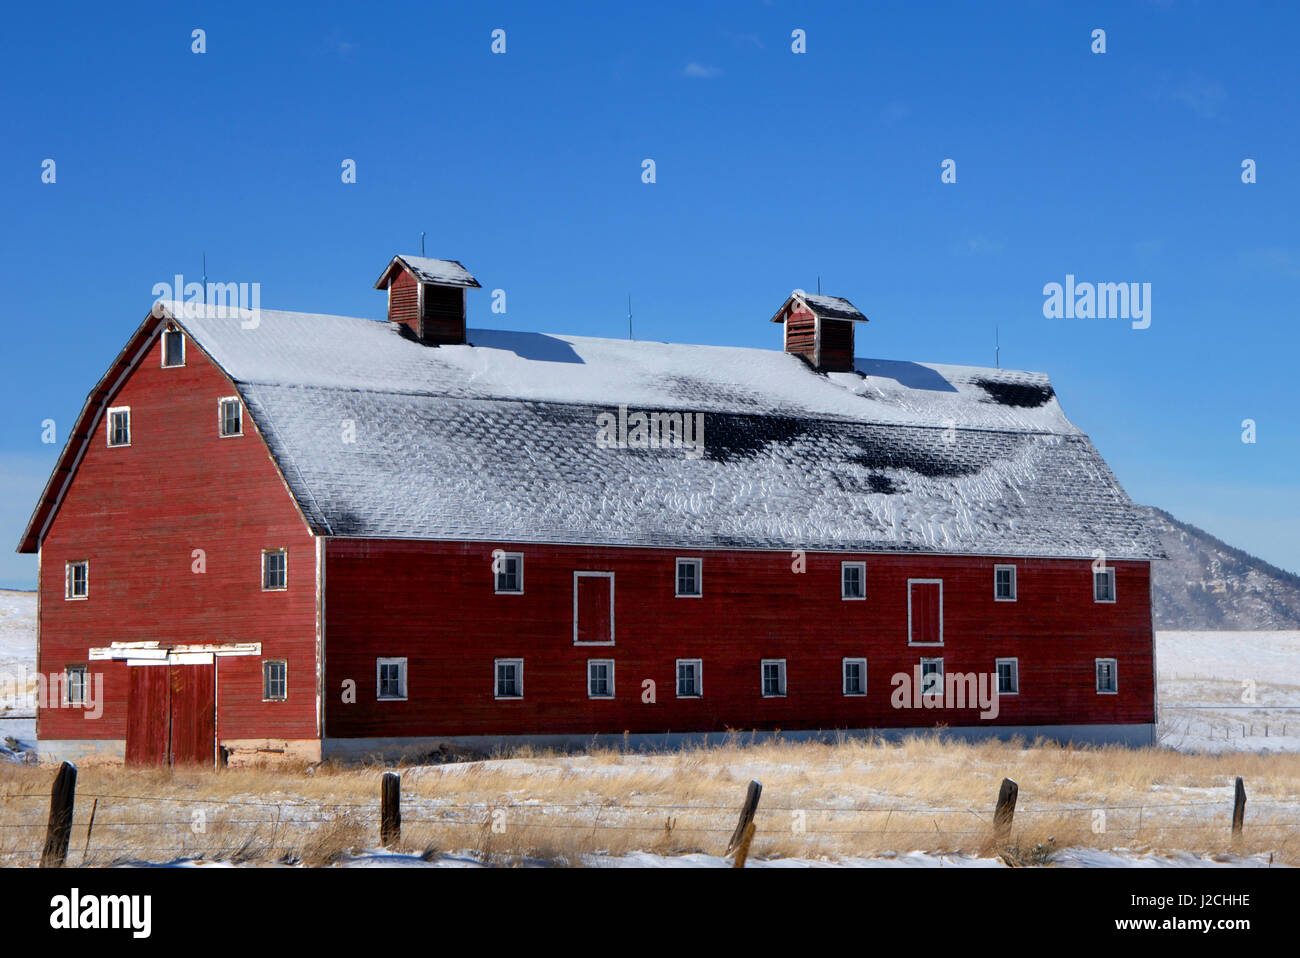 Old, red, wooden barn sits on a field in Colorado.  It is three story with dormers on top.  Light layer of snow - Stock Image